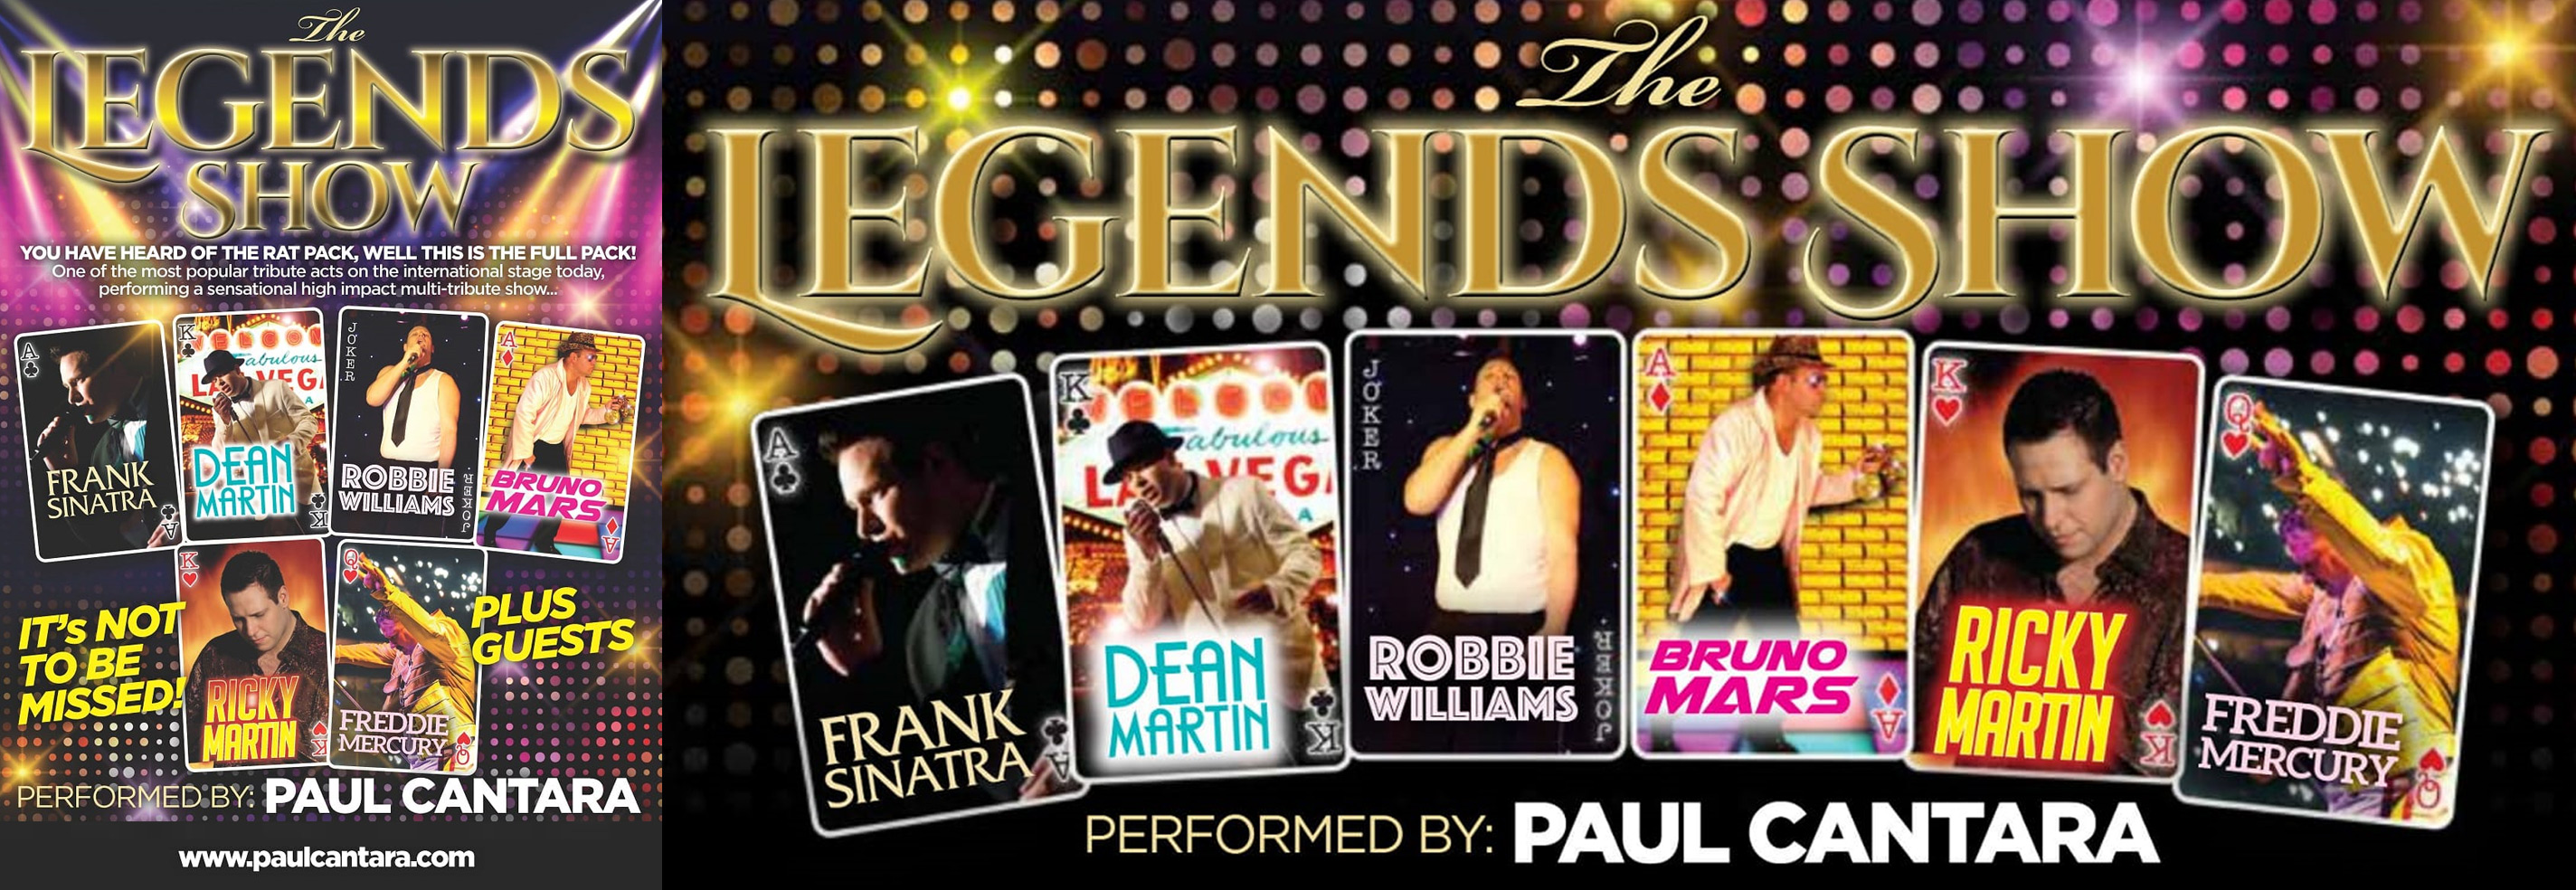 The Legends show at palace of india